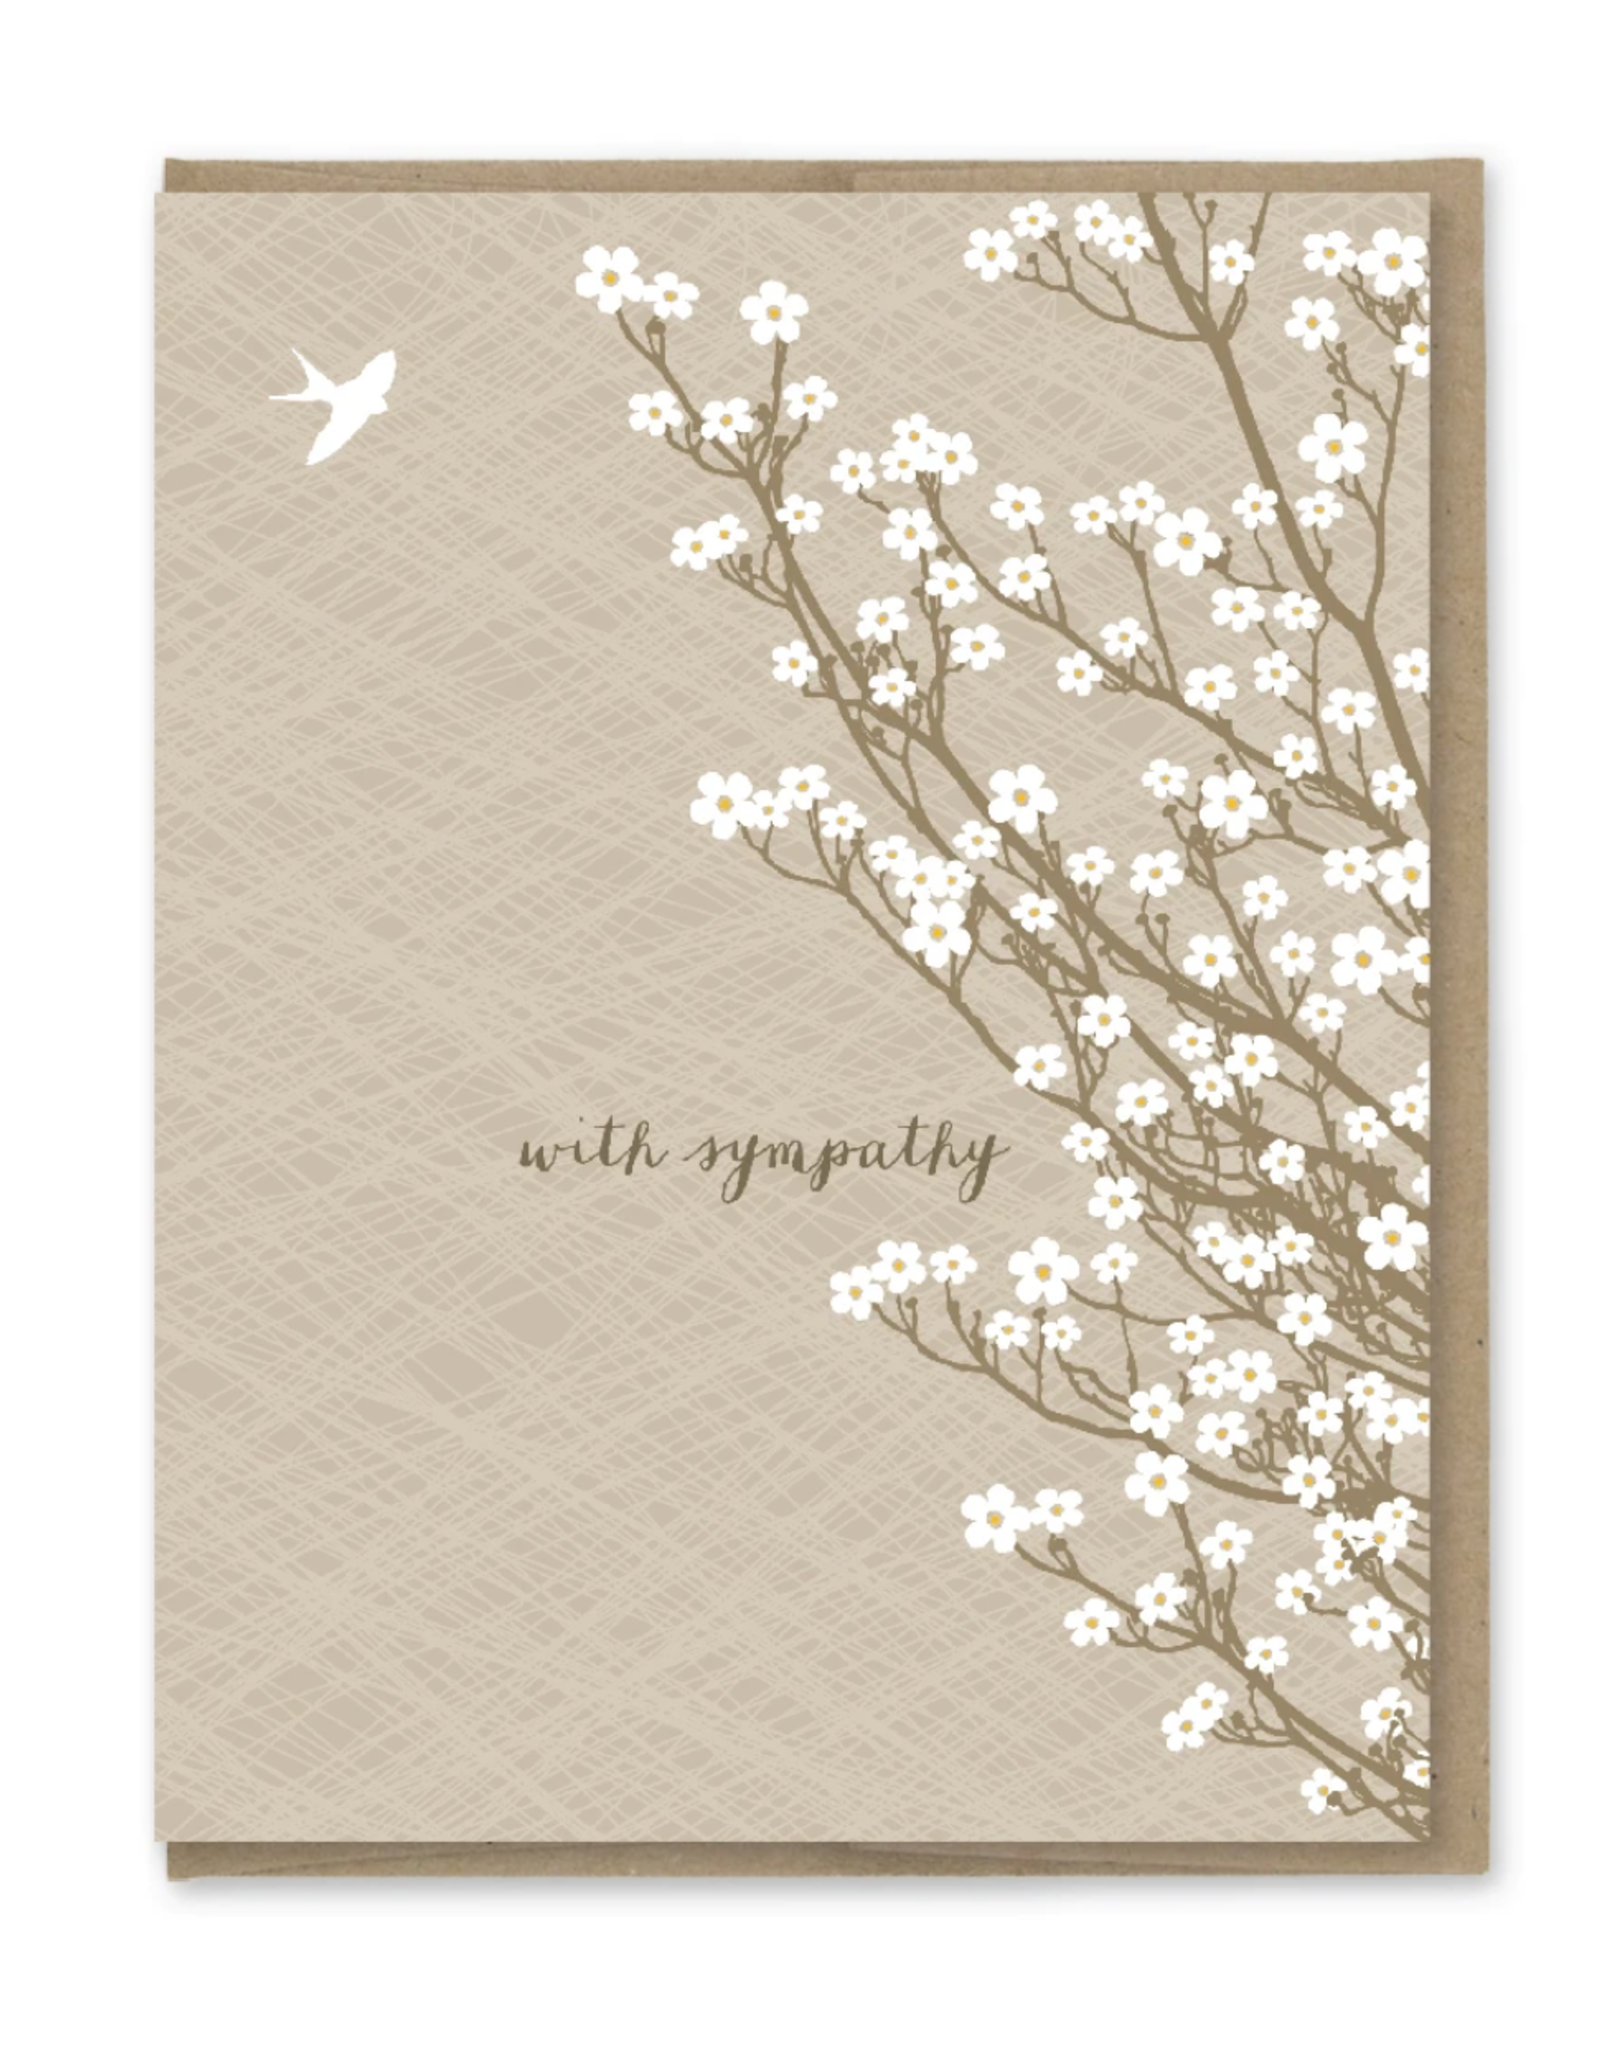 With Sympathy White Tree Blossoms Greeting Card